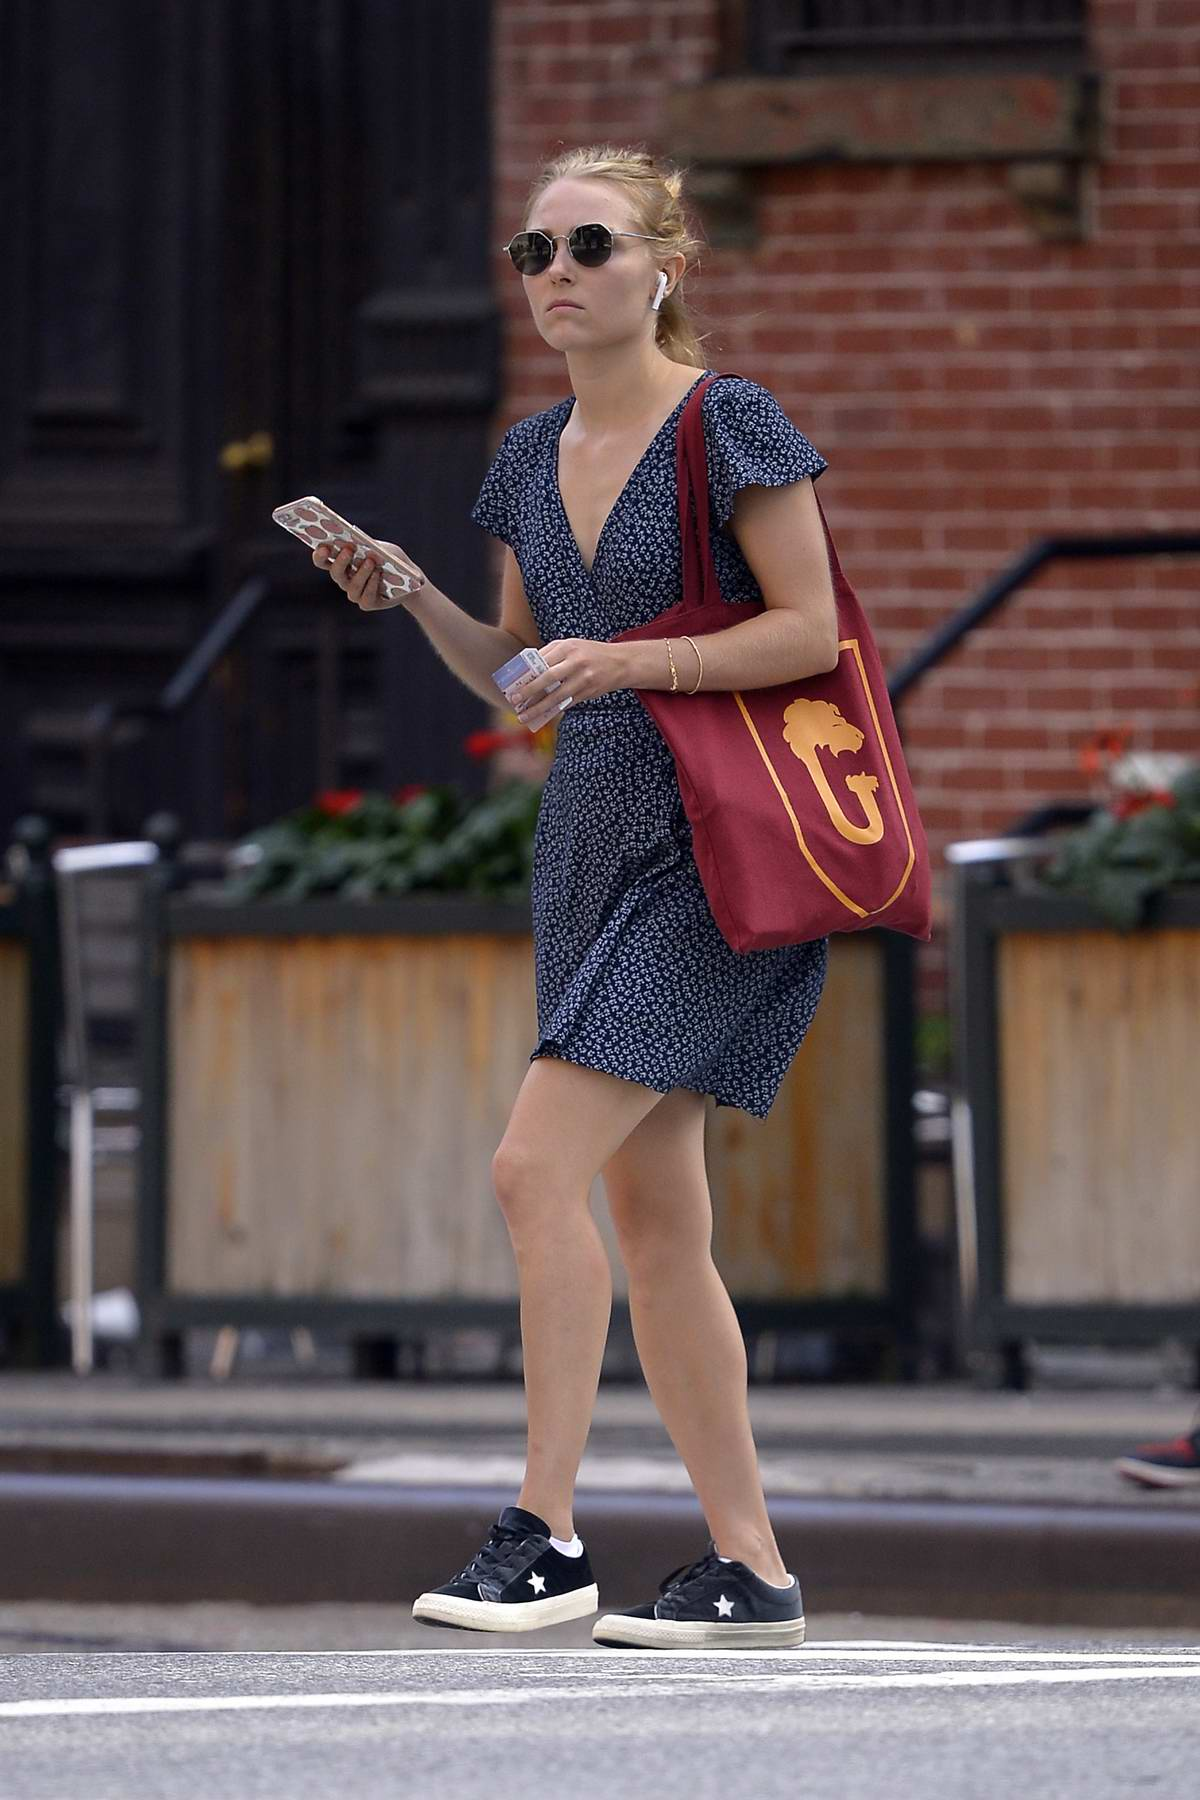 AnnaSophia Robb keeps it casual in a floral summer dress and sneakers while out in New York City